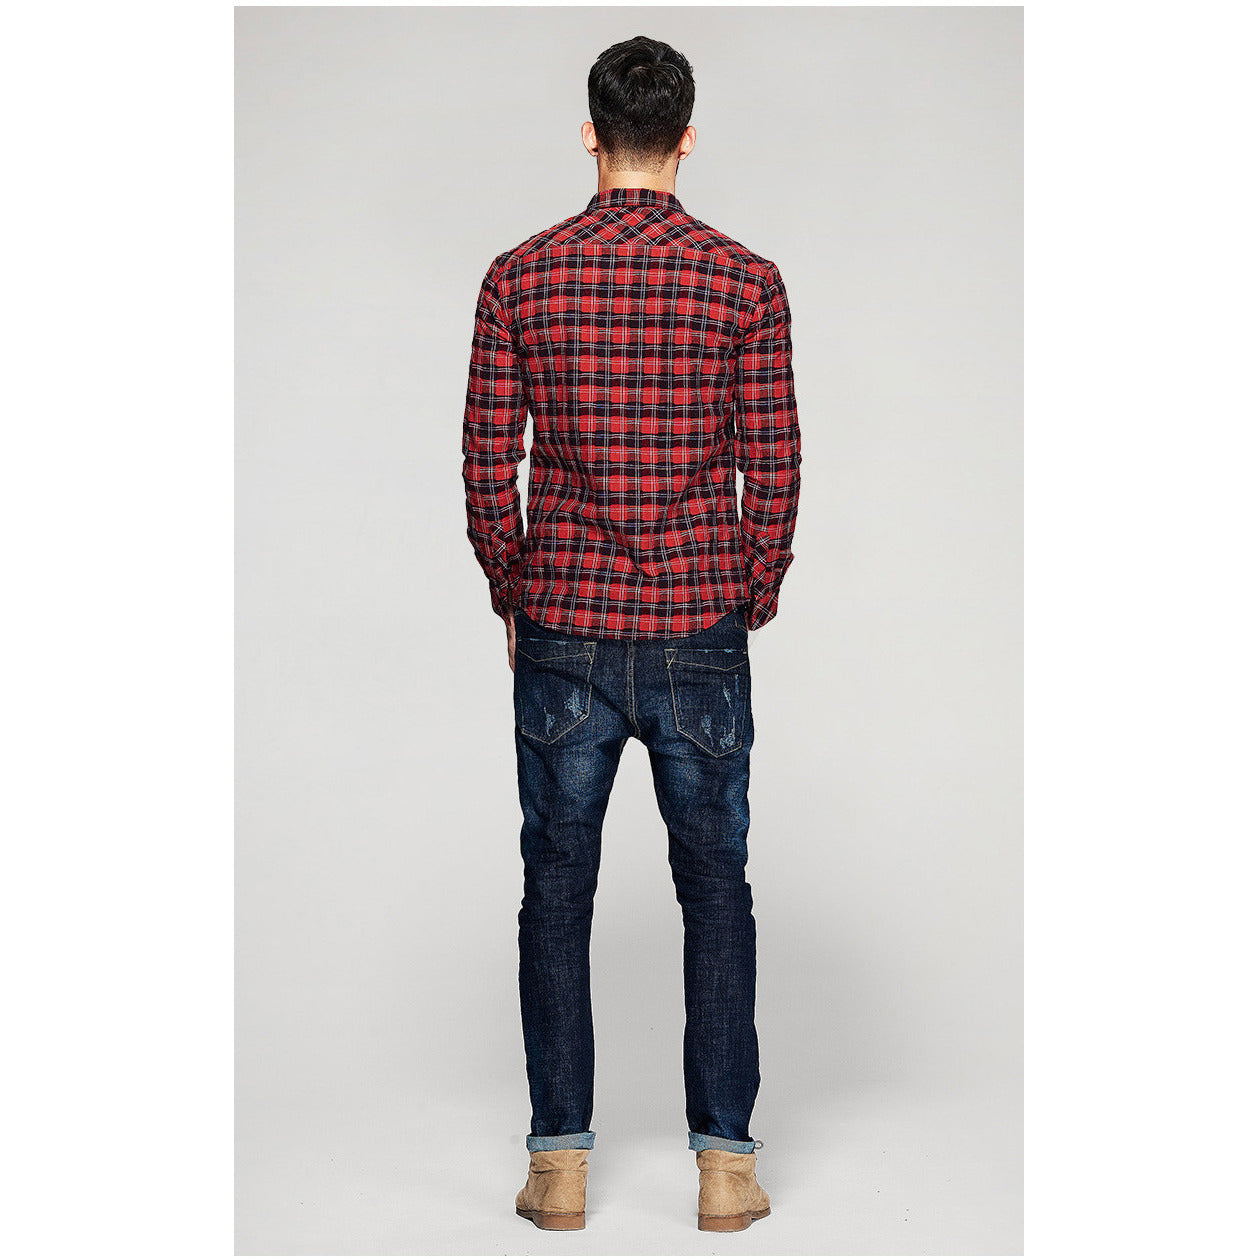 Ken Red Plaid Shirt - Haberfasher